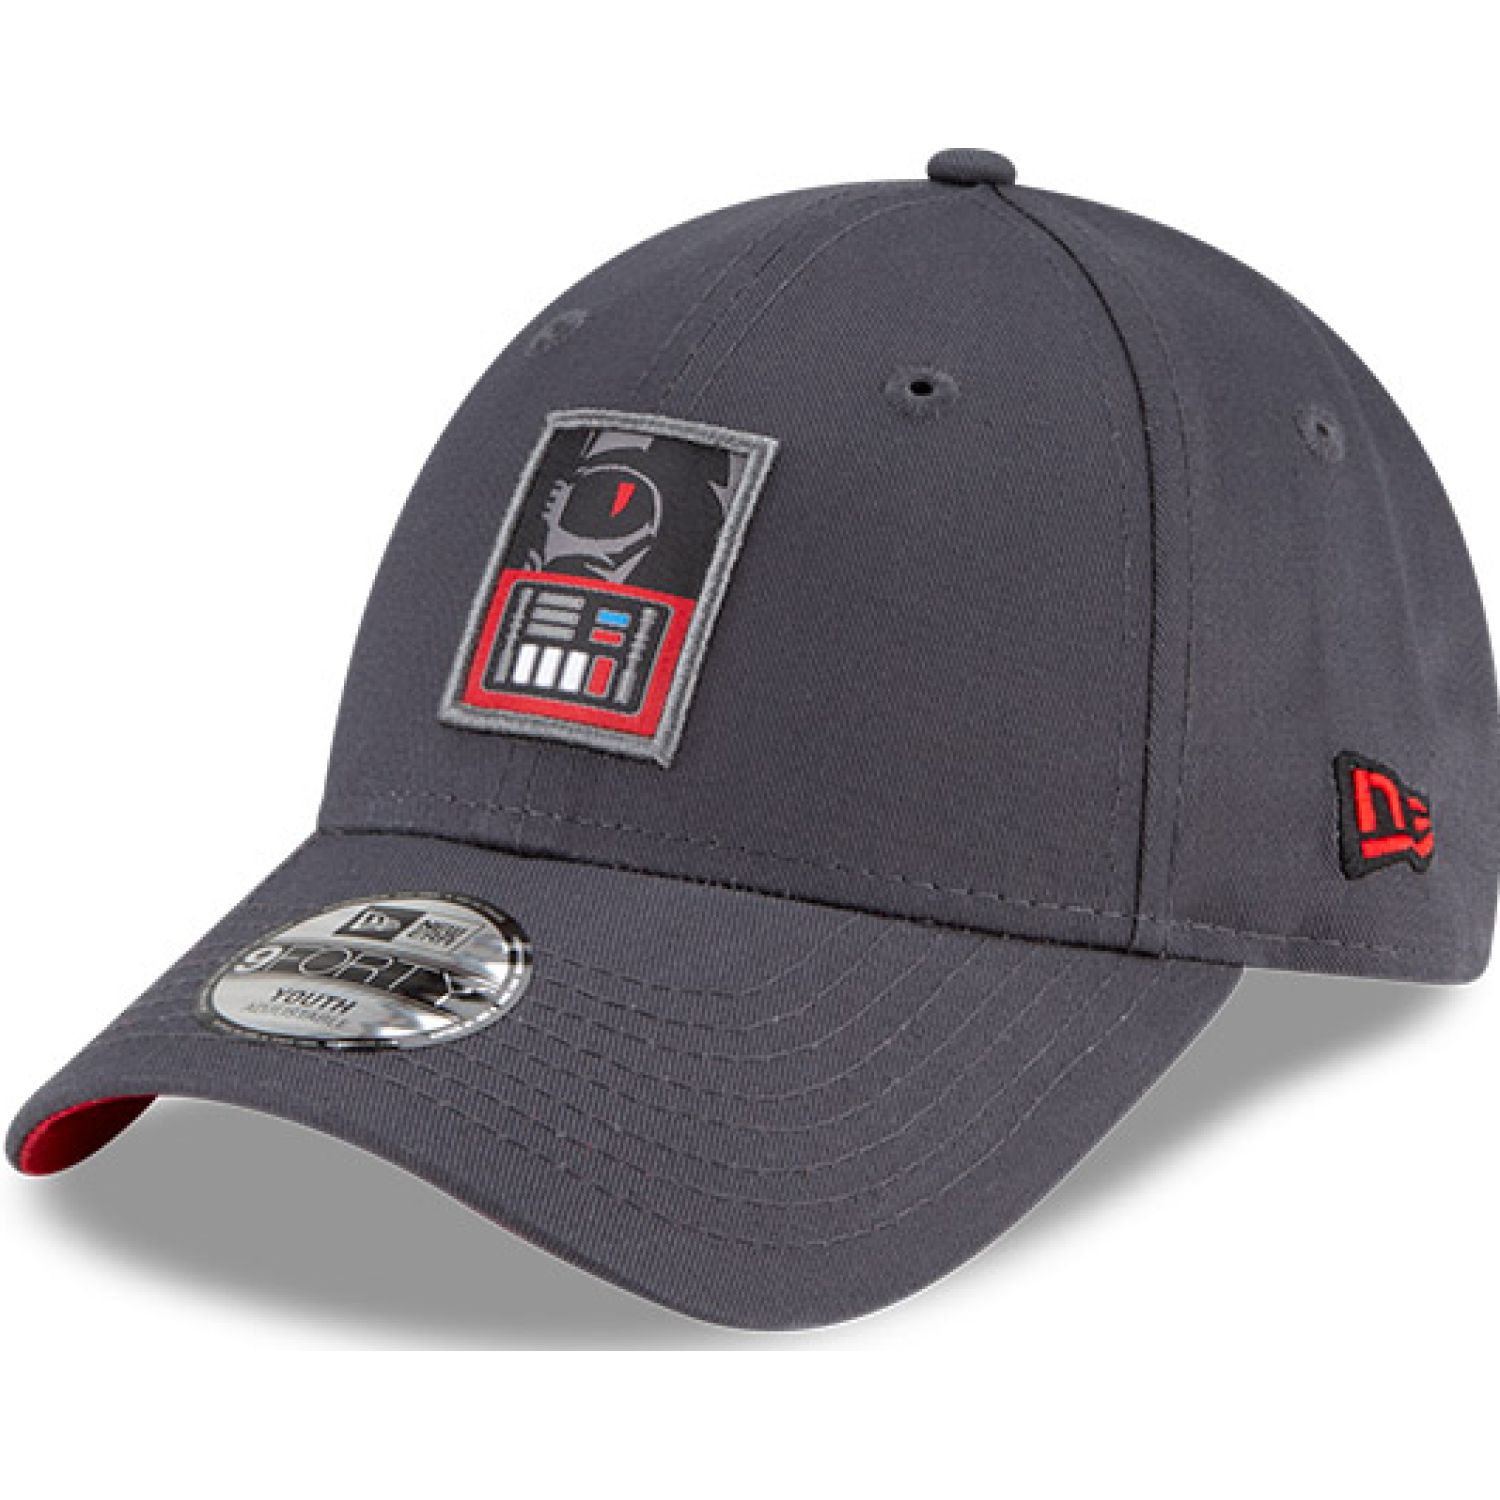 NEW ERA Jr 940snap Patch B6 Da Vader Dk Grh DARK GREY Sombreros y gorros